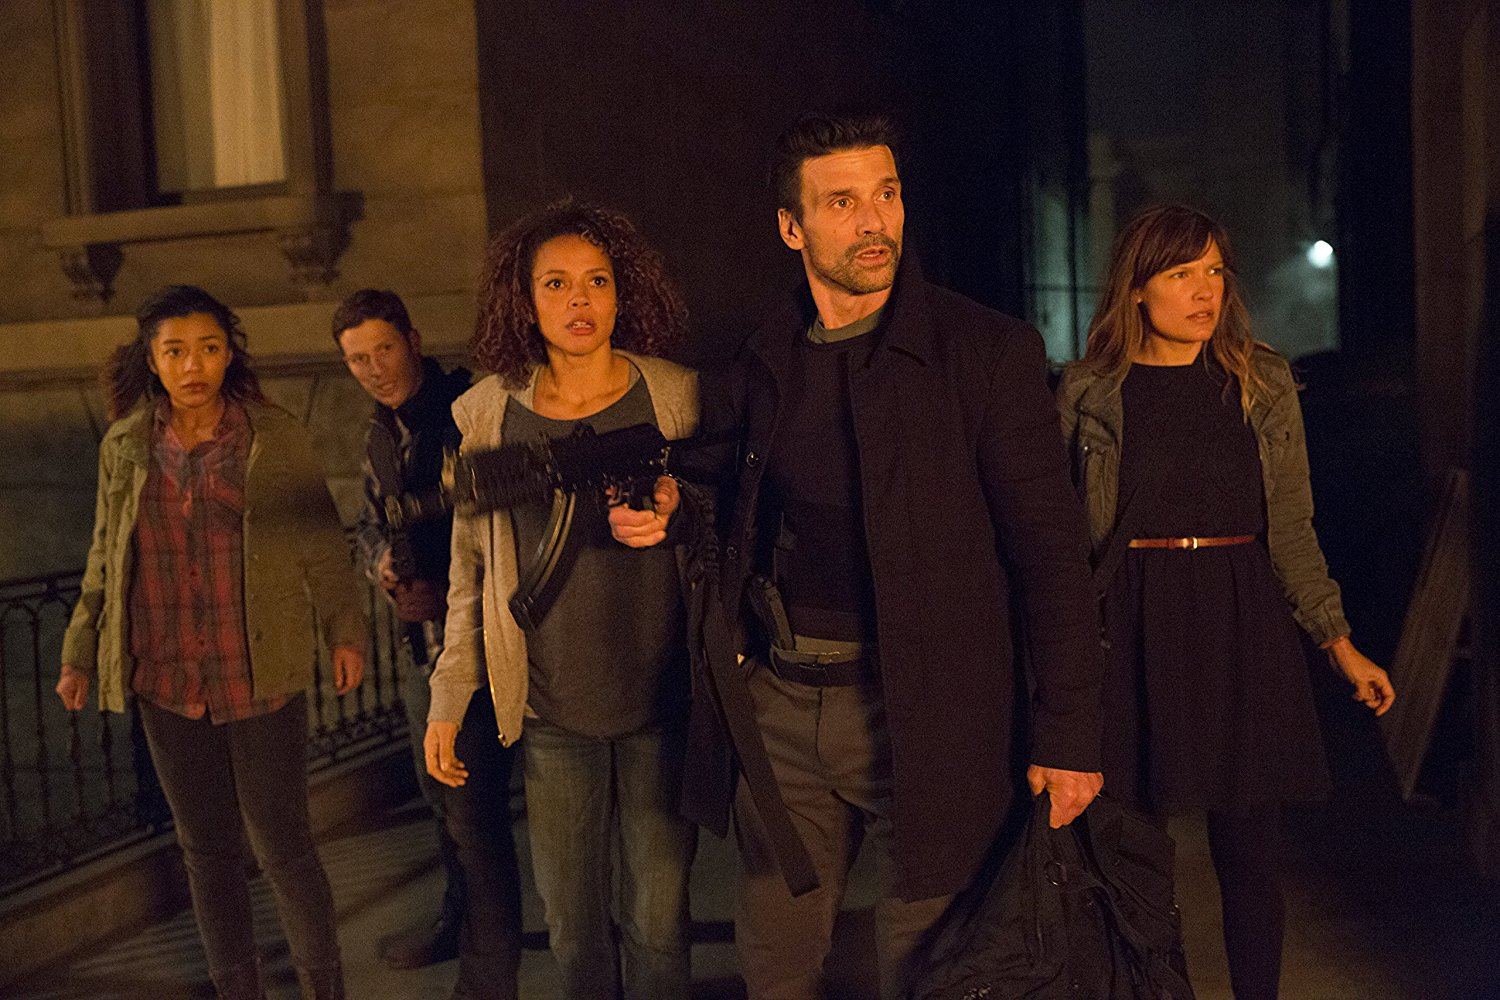 Forced to survive in the streets - Zoe Soul, Zach Gilford, Carmen Ejogo, Frank Grillo, Kiele Sanchez in The Purge: Anarchy (2014)